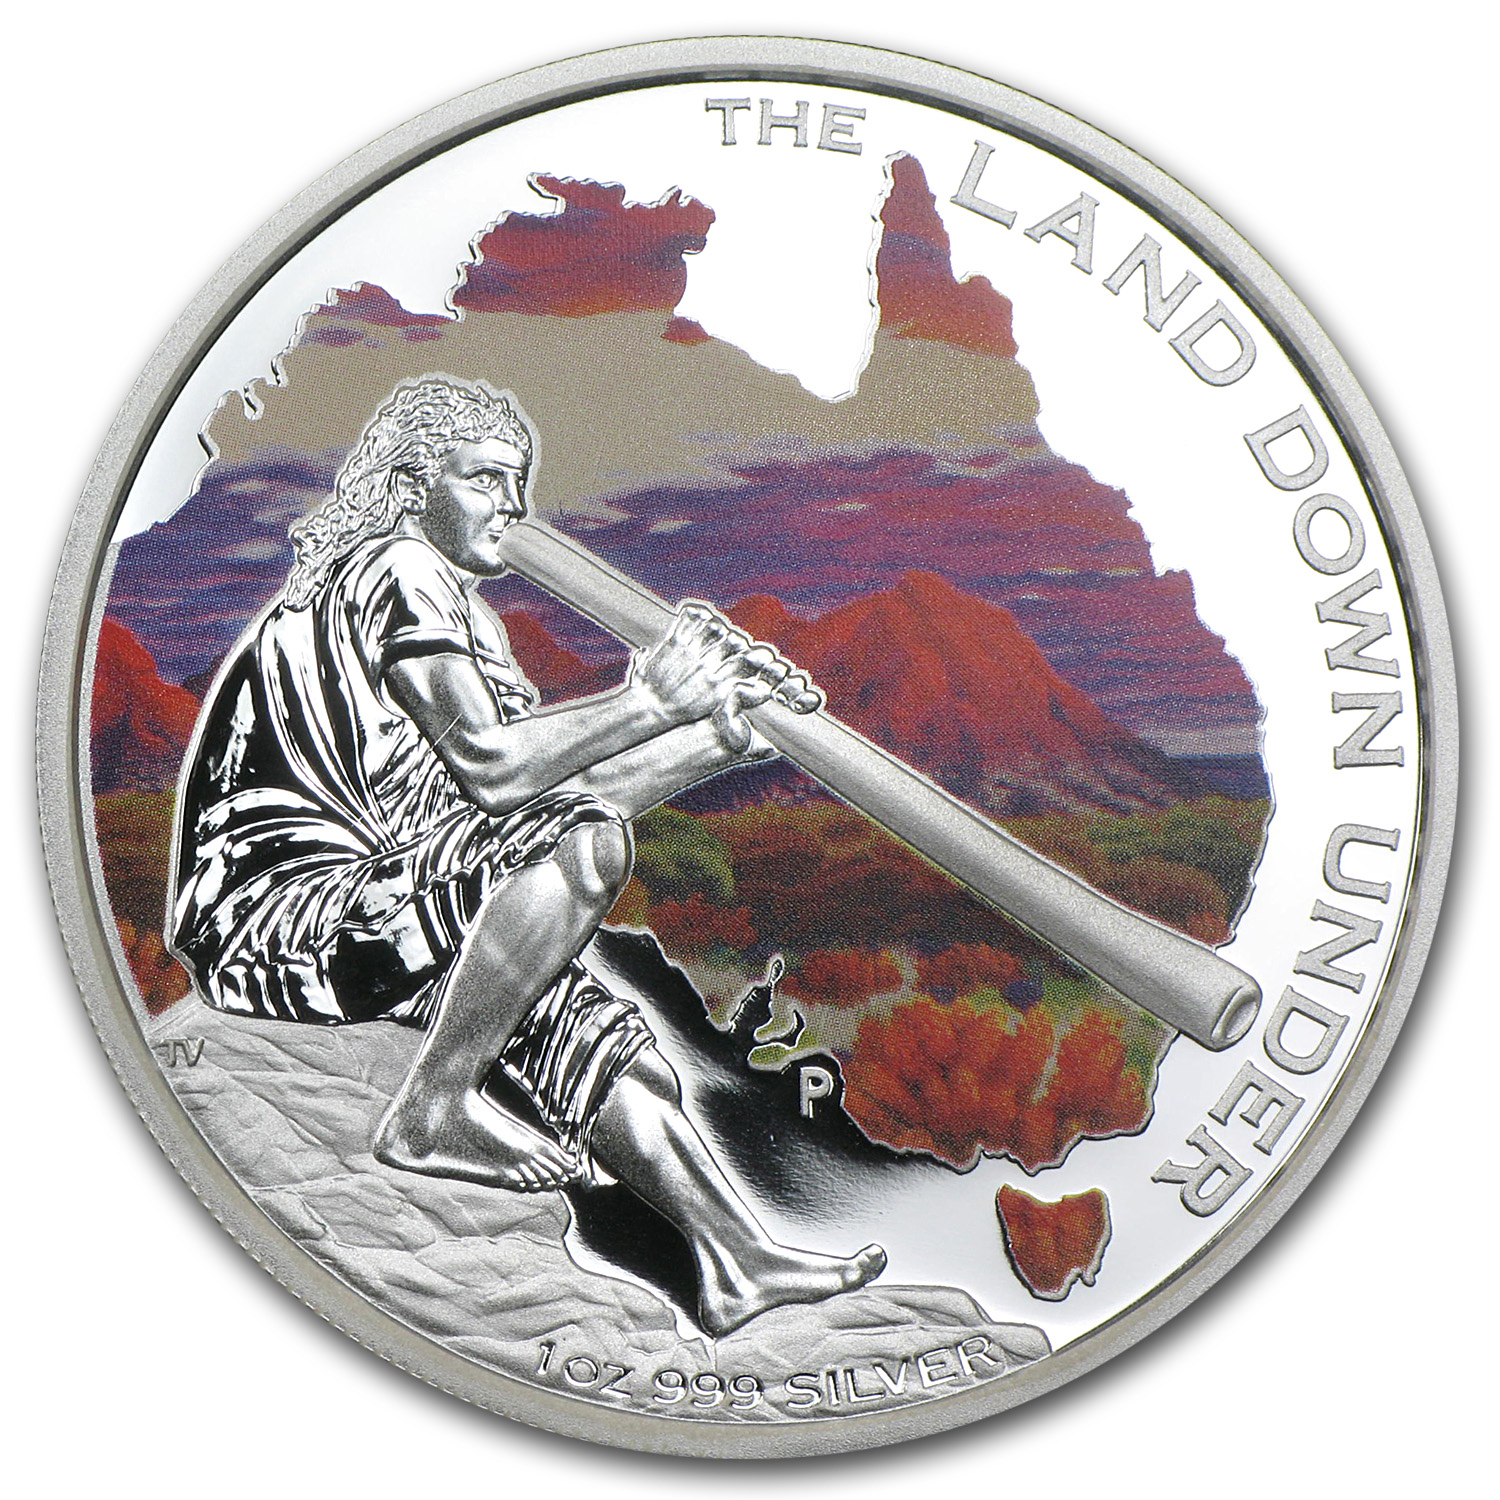 2013 1 oz Silver Australian The Land Down Under Prf (Didgeridoo)